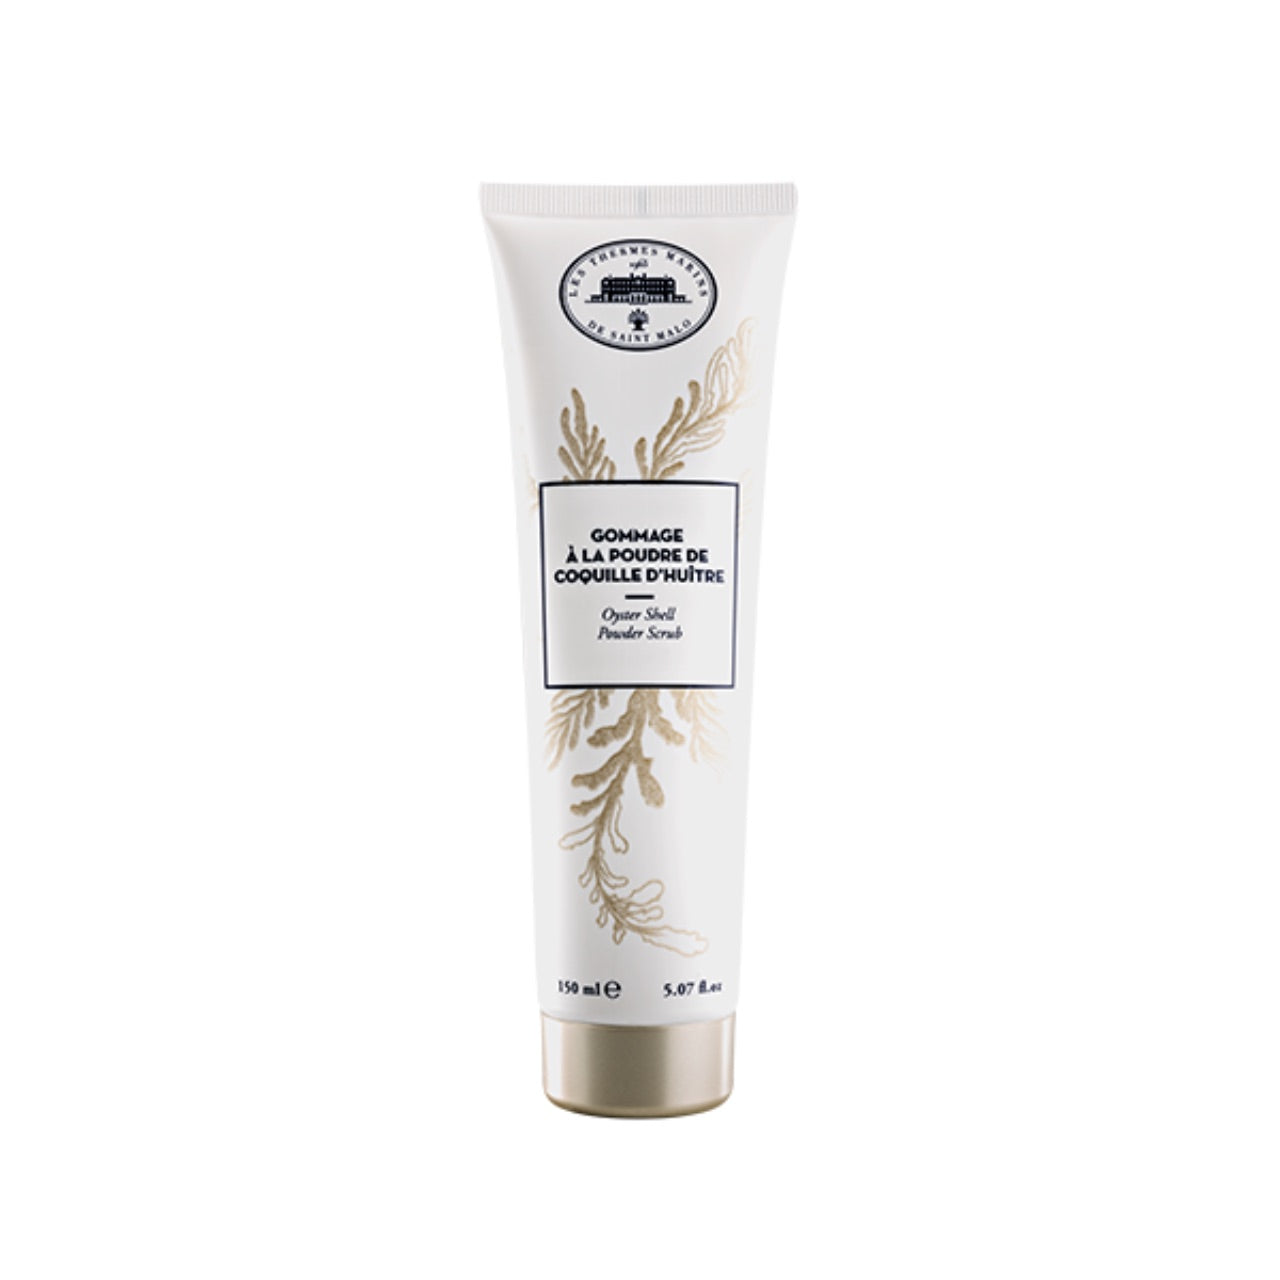 THERMES MARINS Oyster Shell Powder Scrub